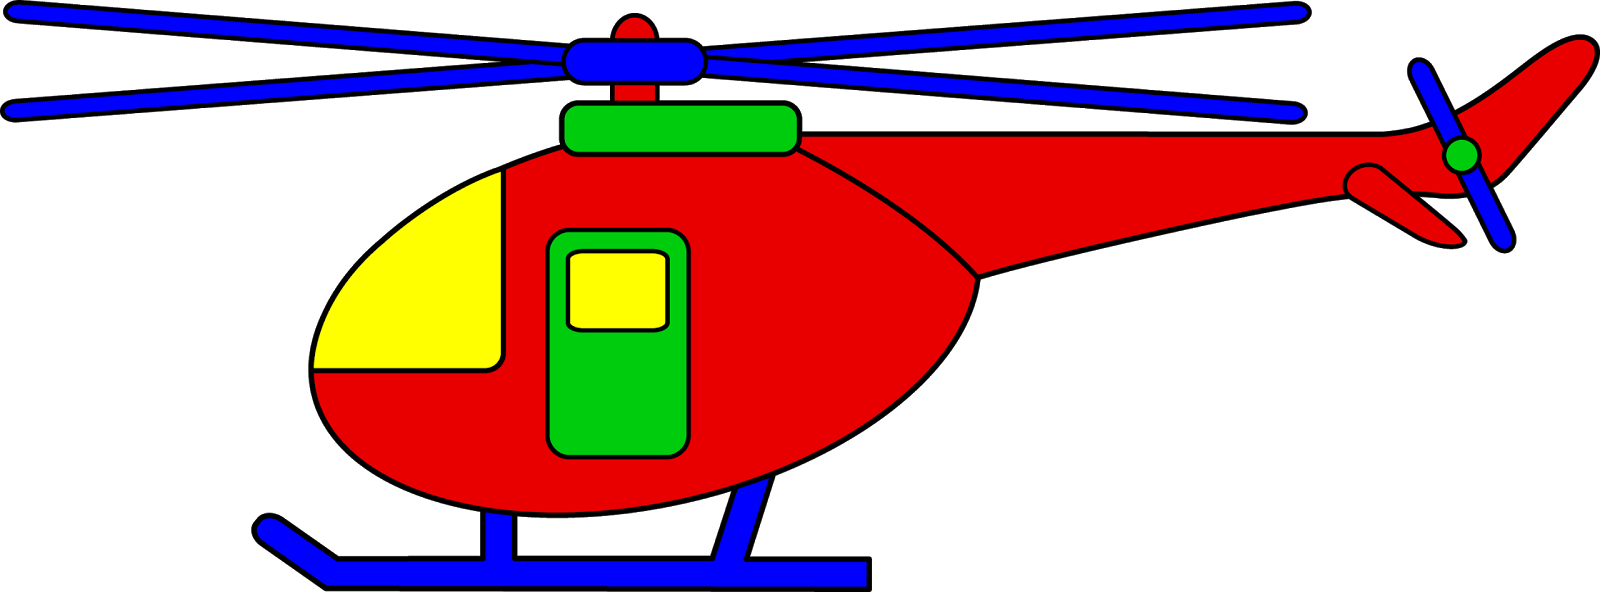 Helicopter clipart banner. Planet happy smiles september